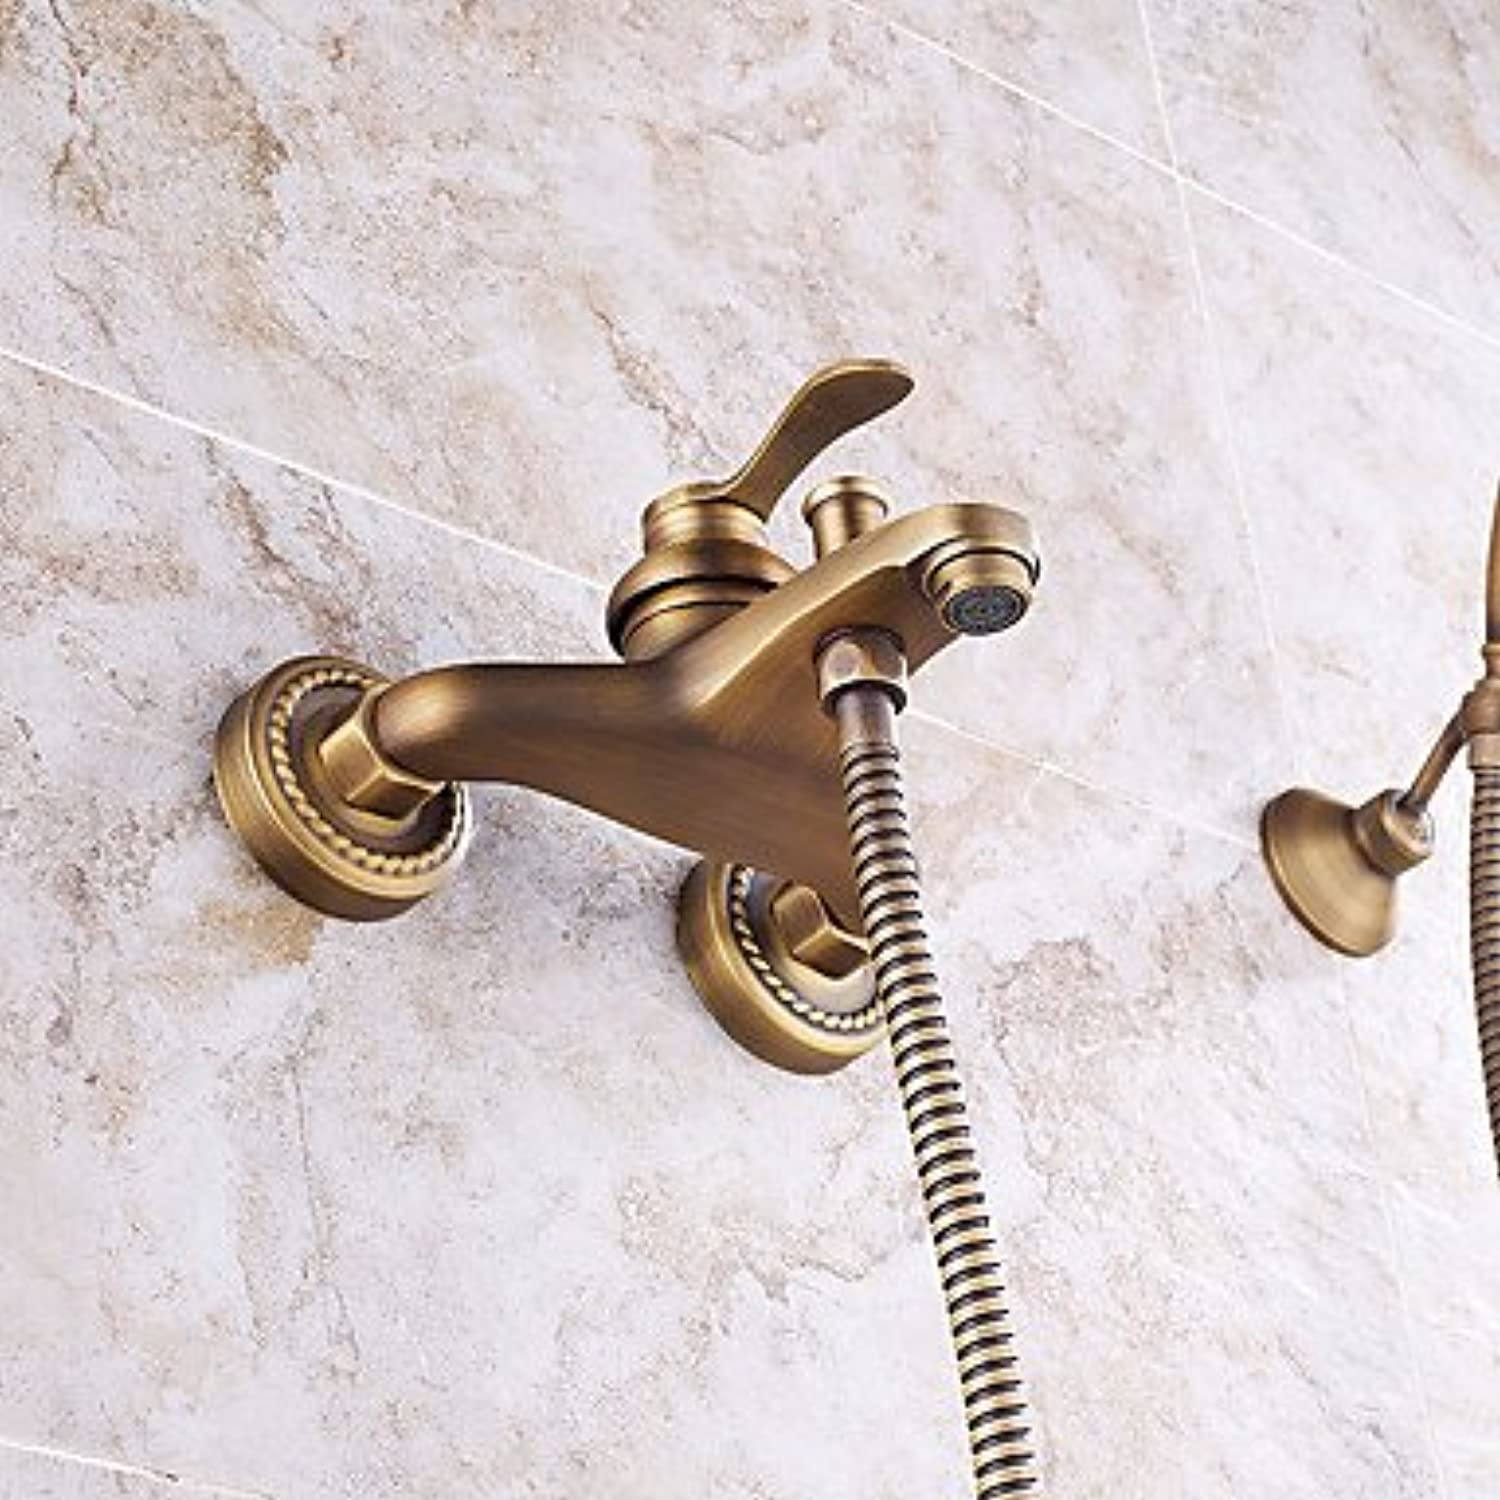 YAMEIJIA Shower Faucet - Antique Art Deco Retro Modern Antique Copper Wall Mounted Ceramic Valve Brass Single Handle Two Holes